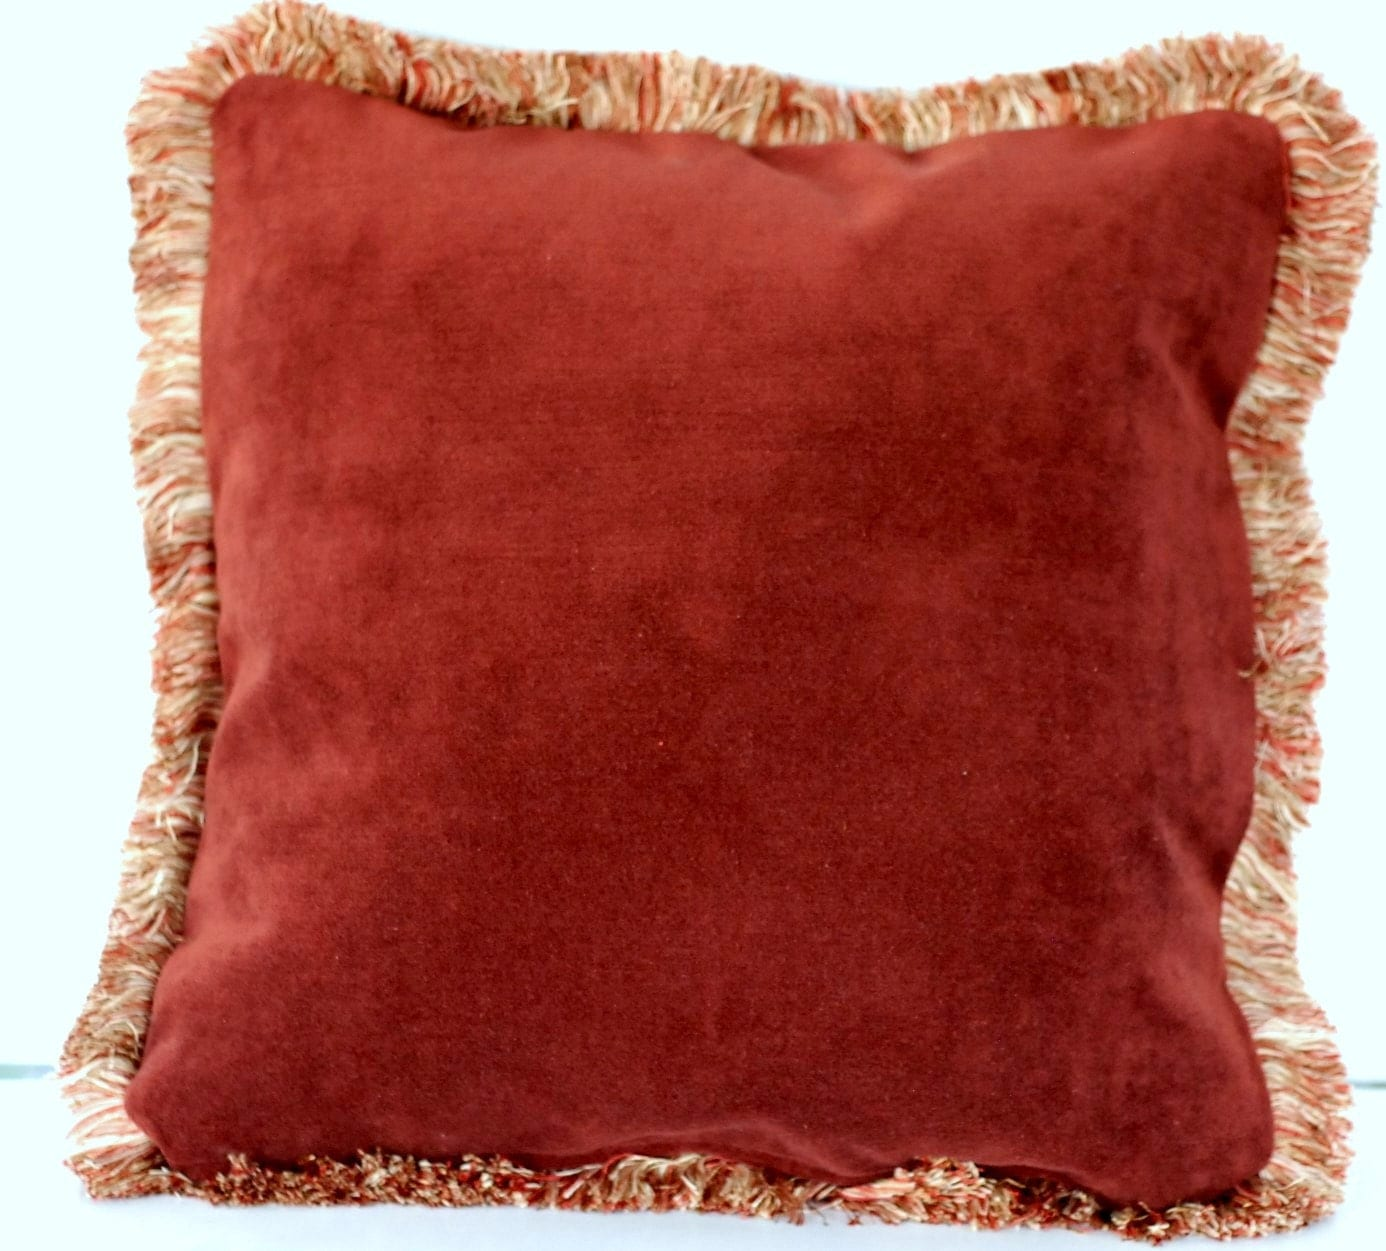 Large Velvet Decorative Throw Pillows With Fringe For Sofa